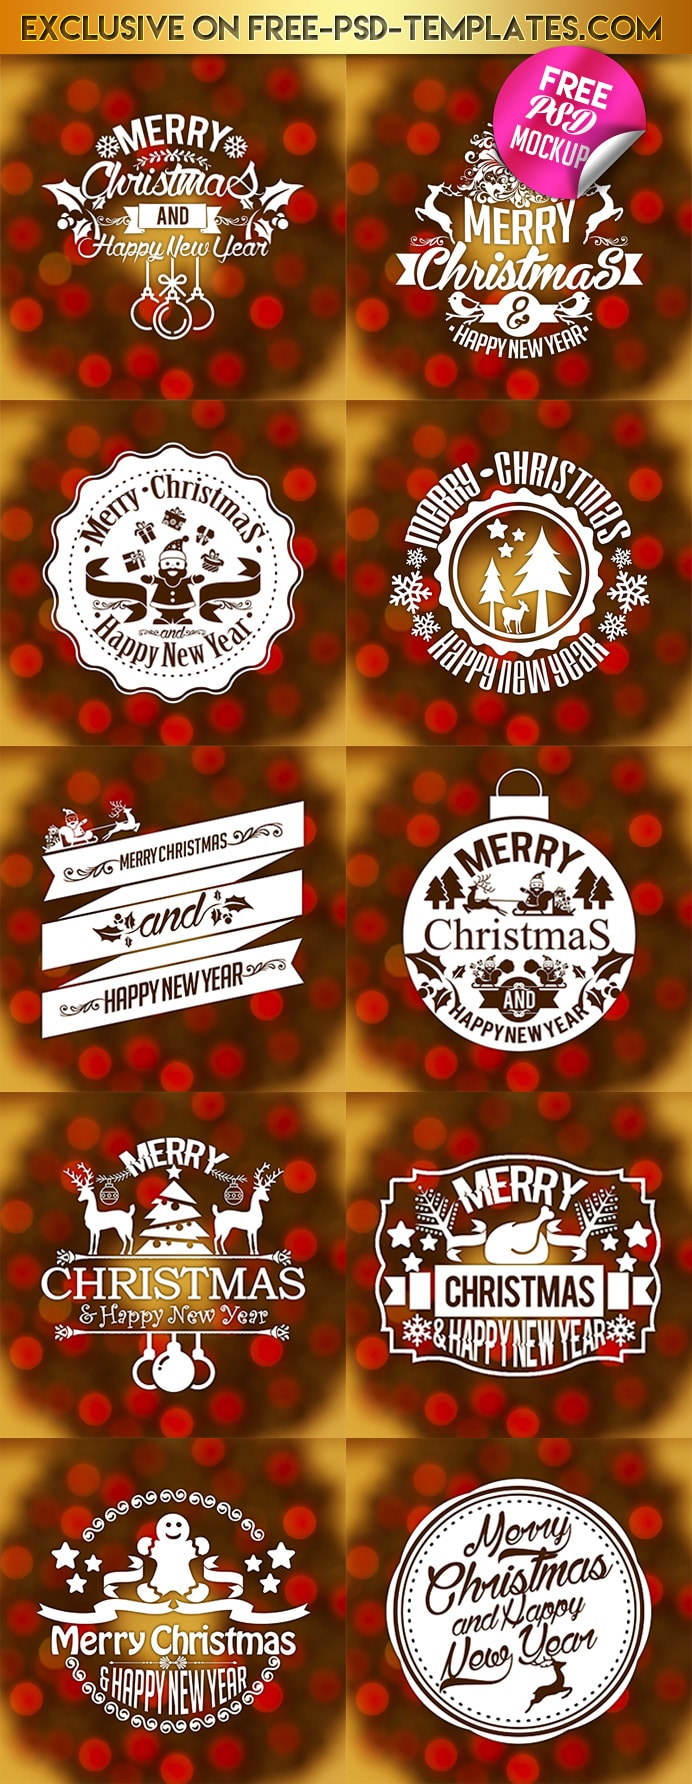 Free Christmas & New Year Vintage Labels